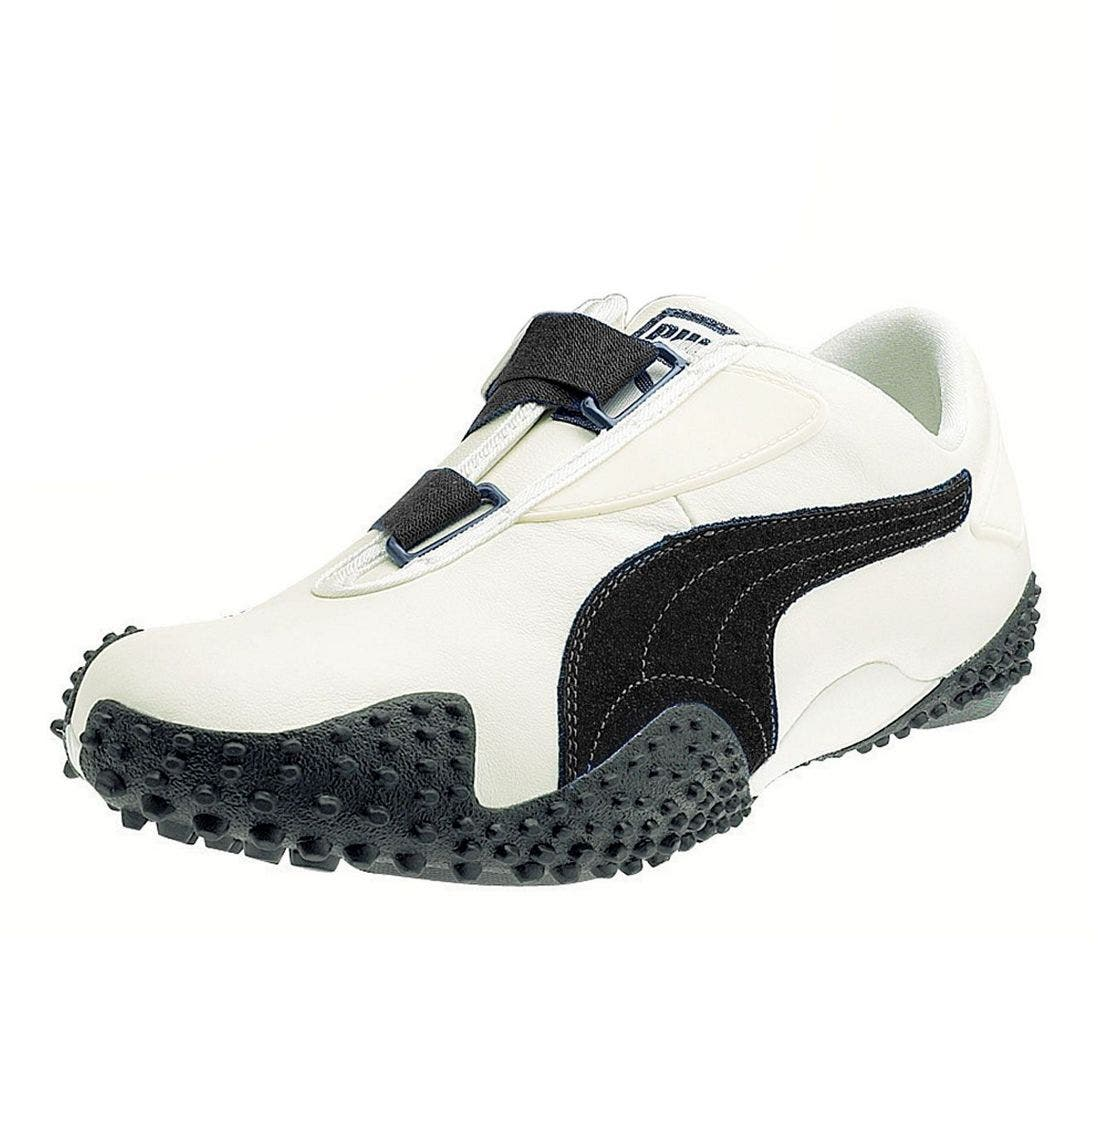 'Mostro Leather' Athletic Shoe,                             Main thumbnail 1, color,                             NAV